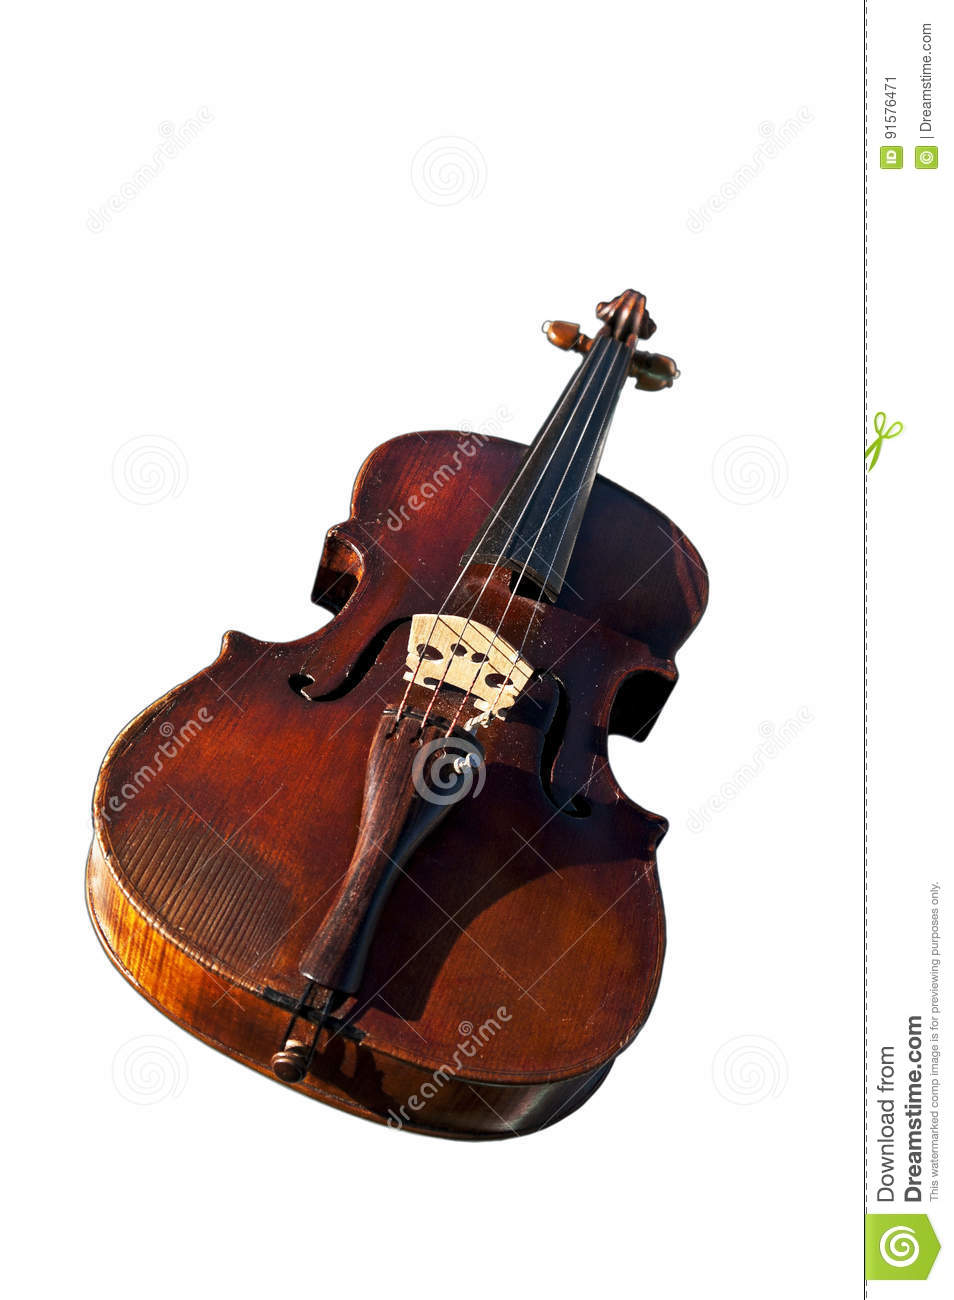 Solo Violin Cutout White Background Stock Image - Image of